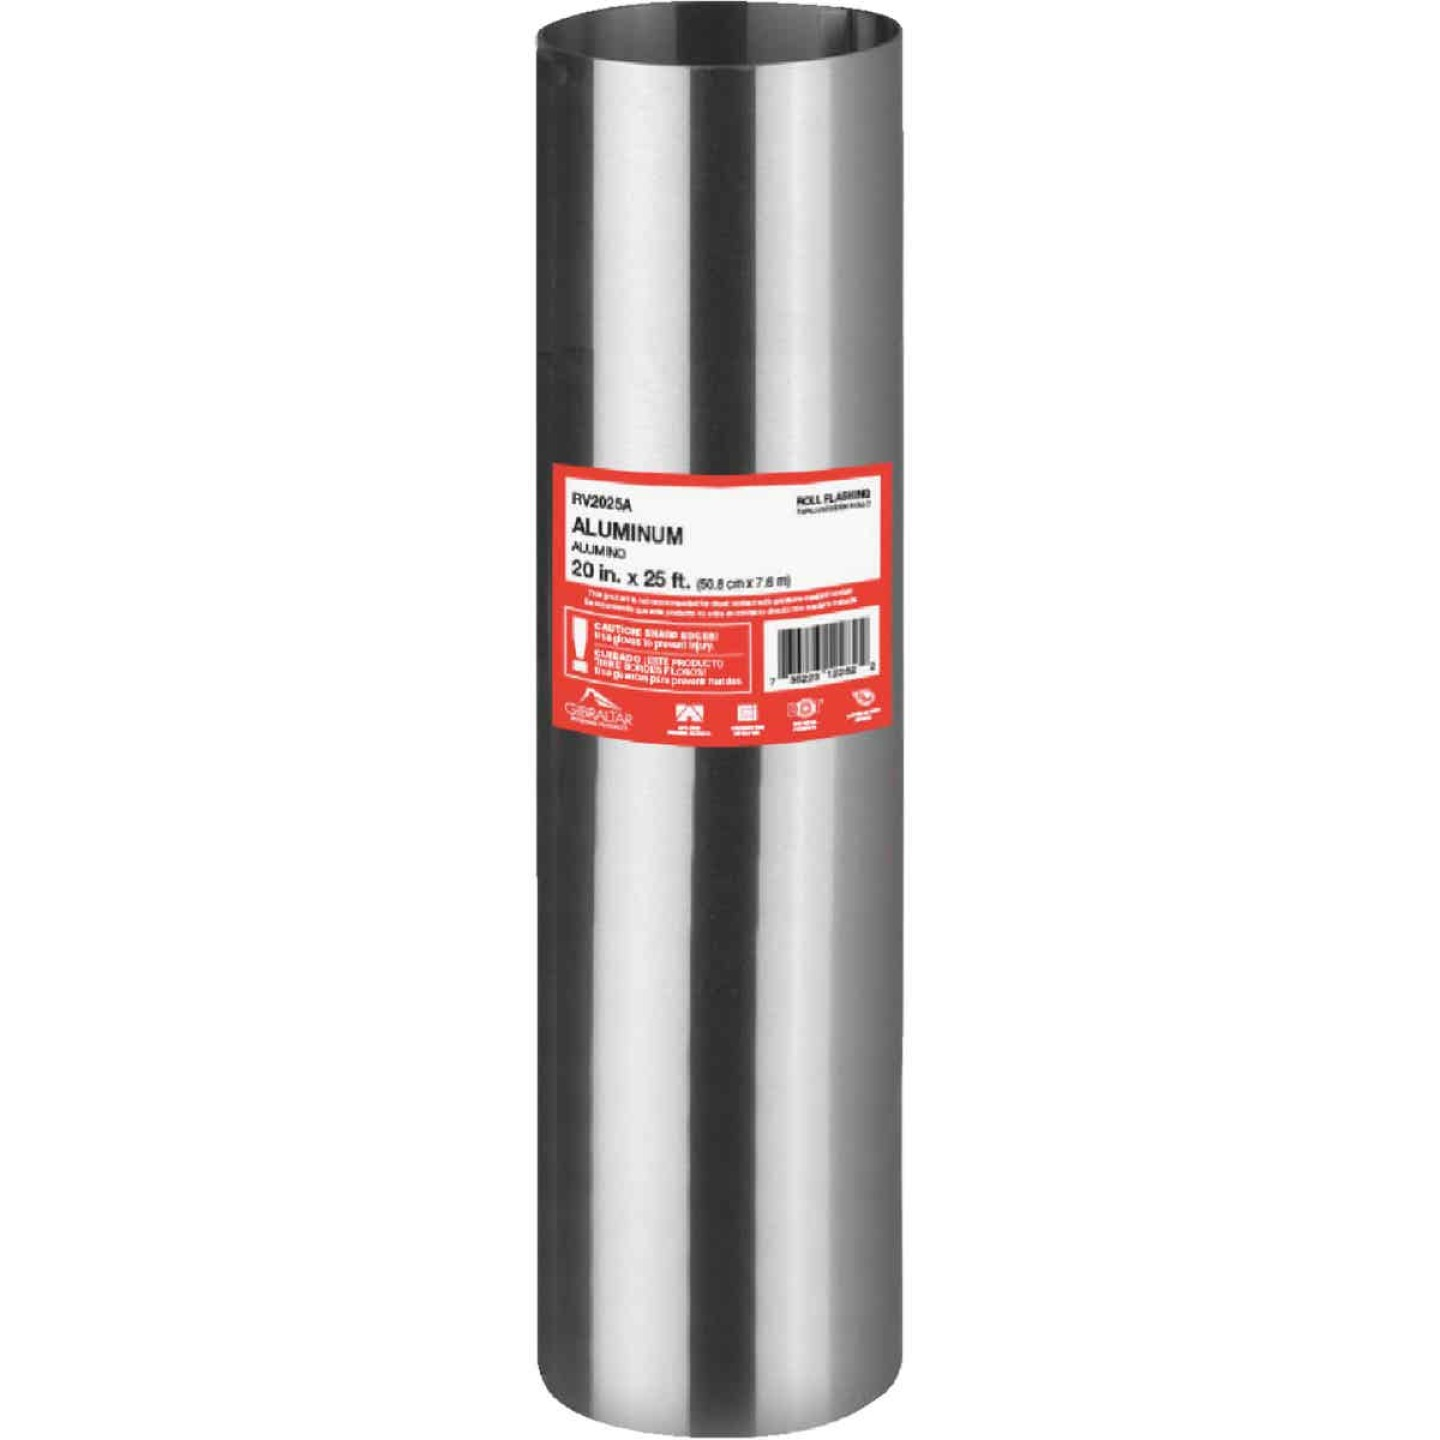 NorWesco 20 In. x 25 Ft. Mill Aluminum Roll Valley Flashing Image 1